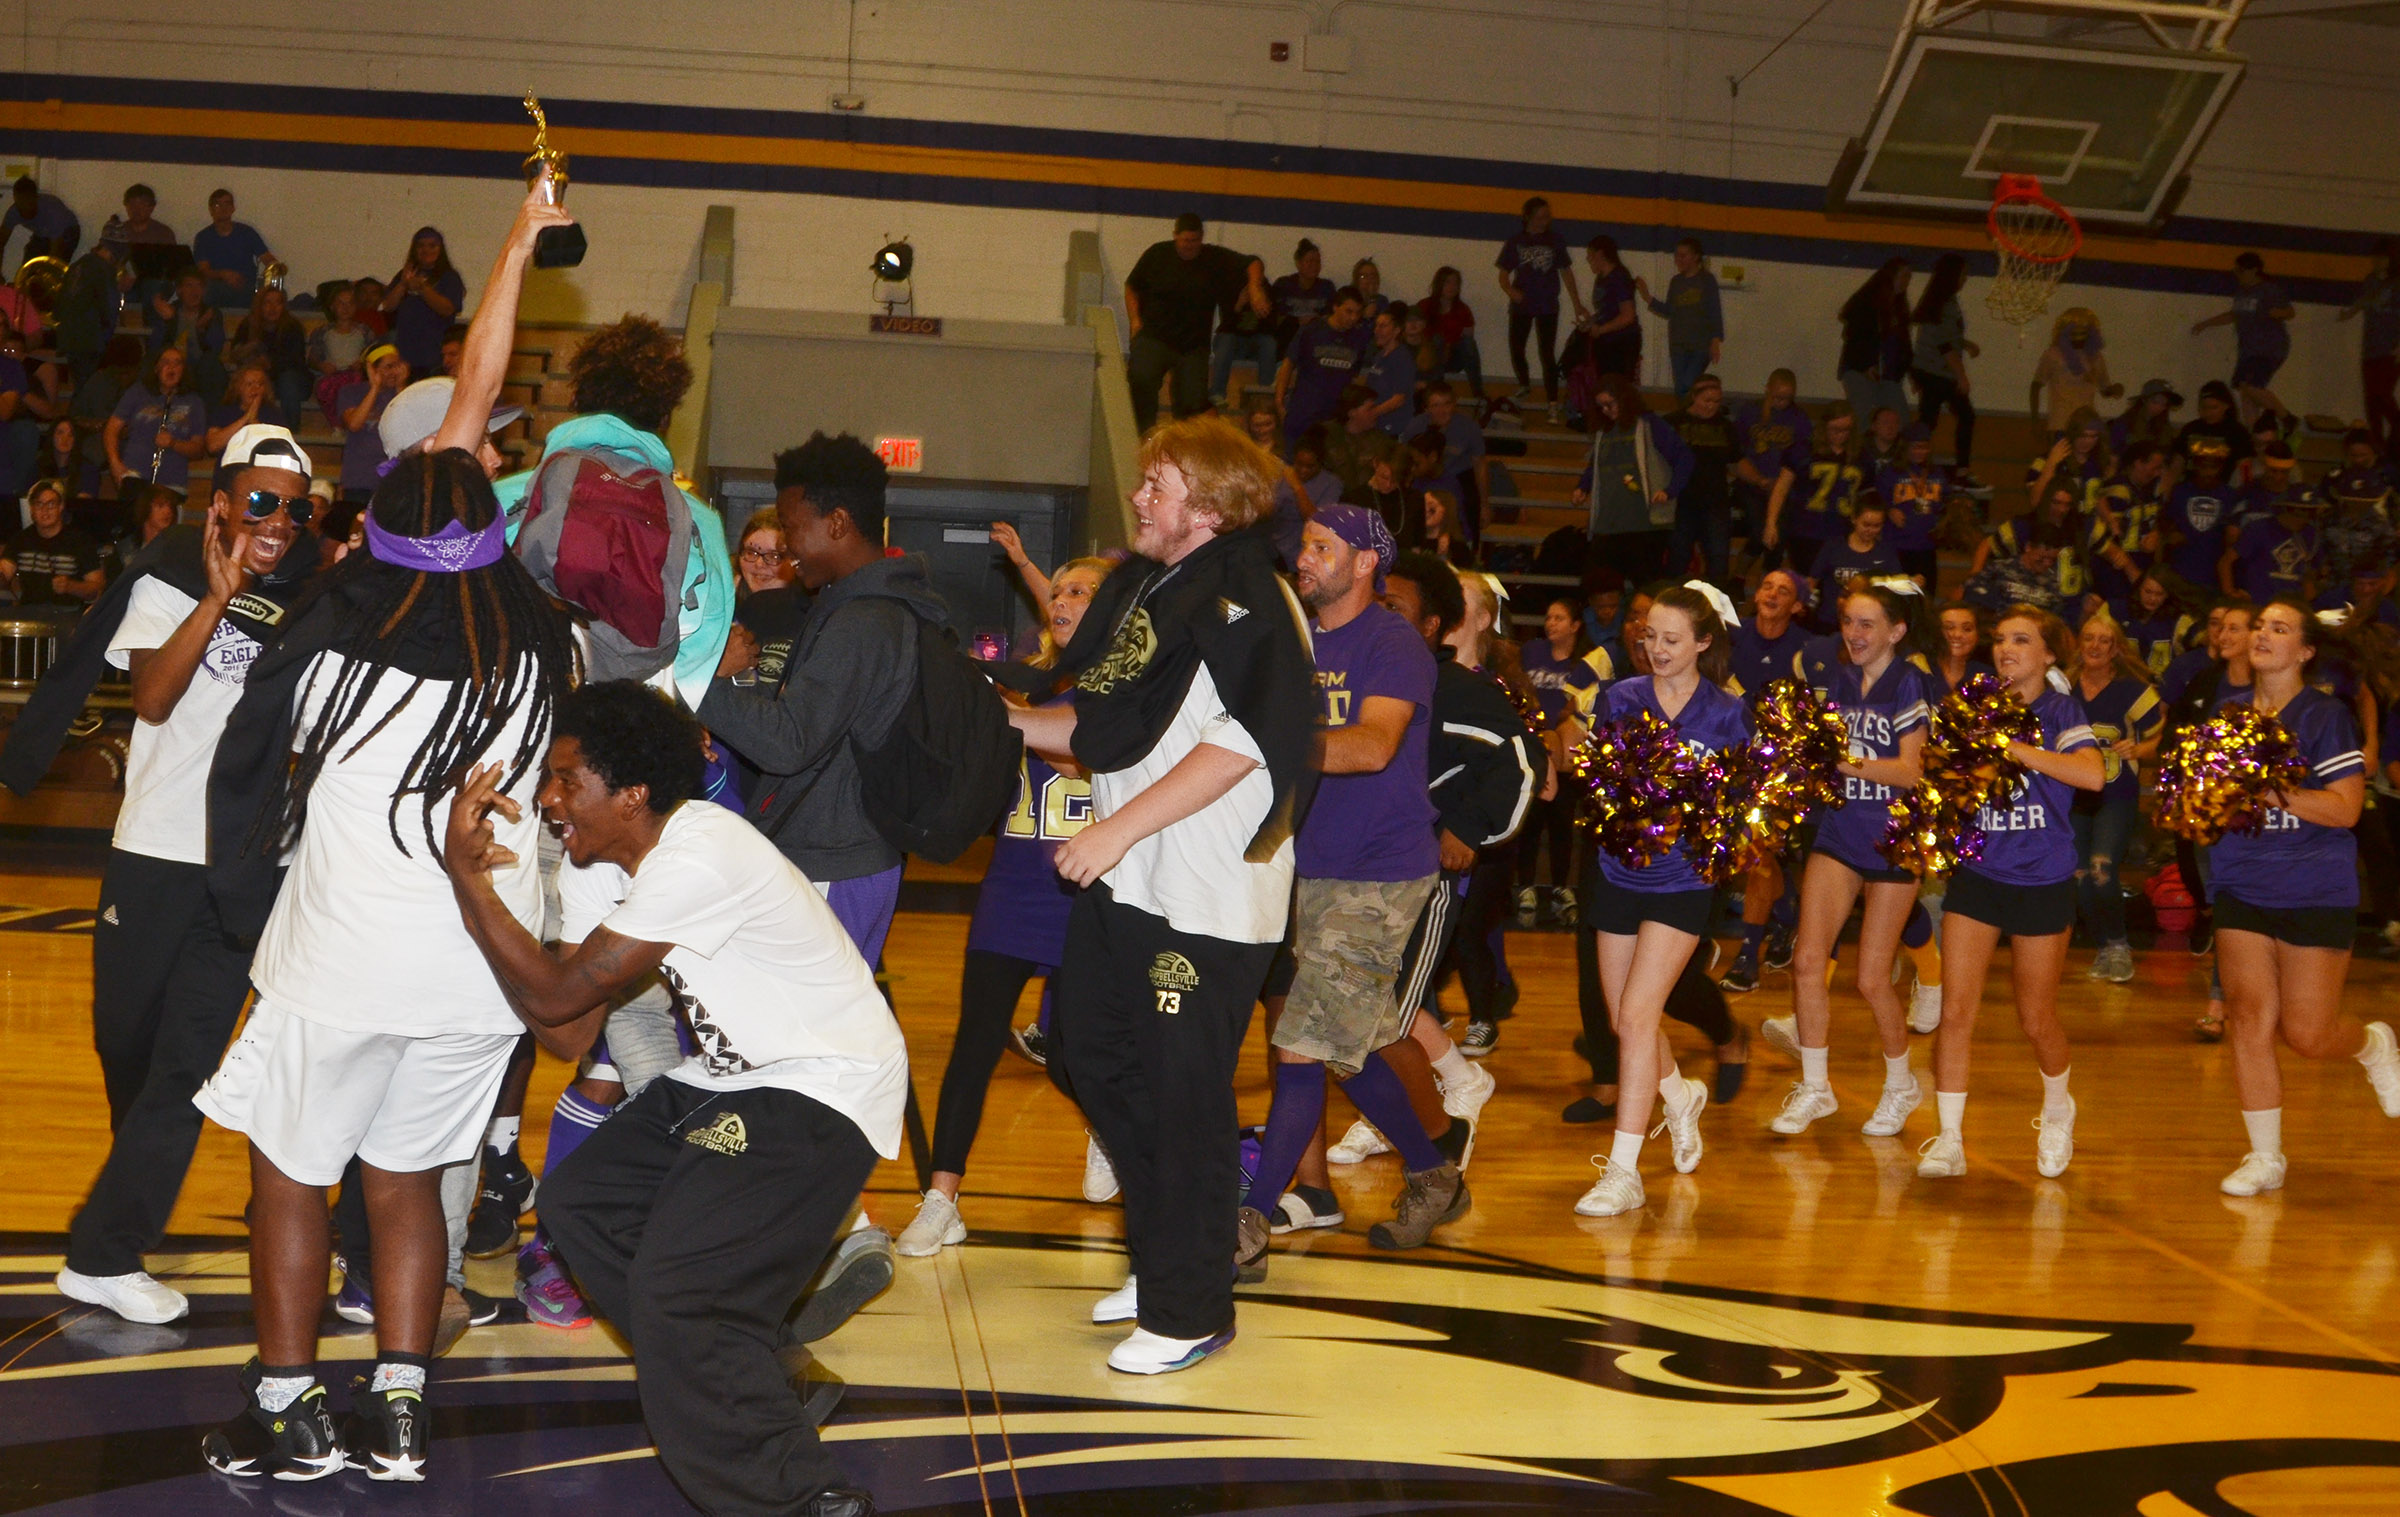 CHS students cheer as they are announced as the winners of this year's spirit stick.